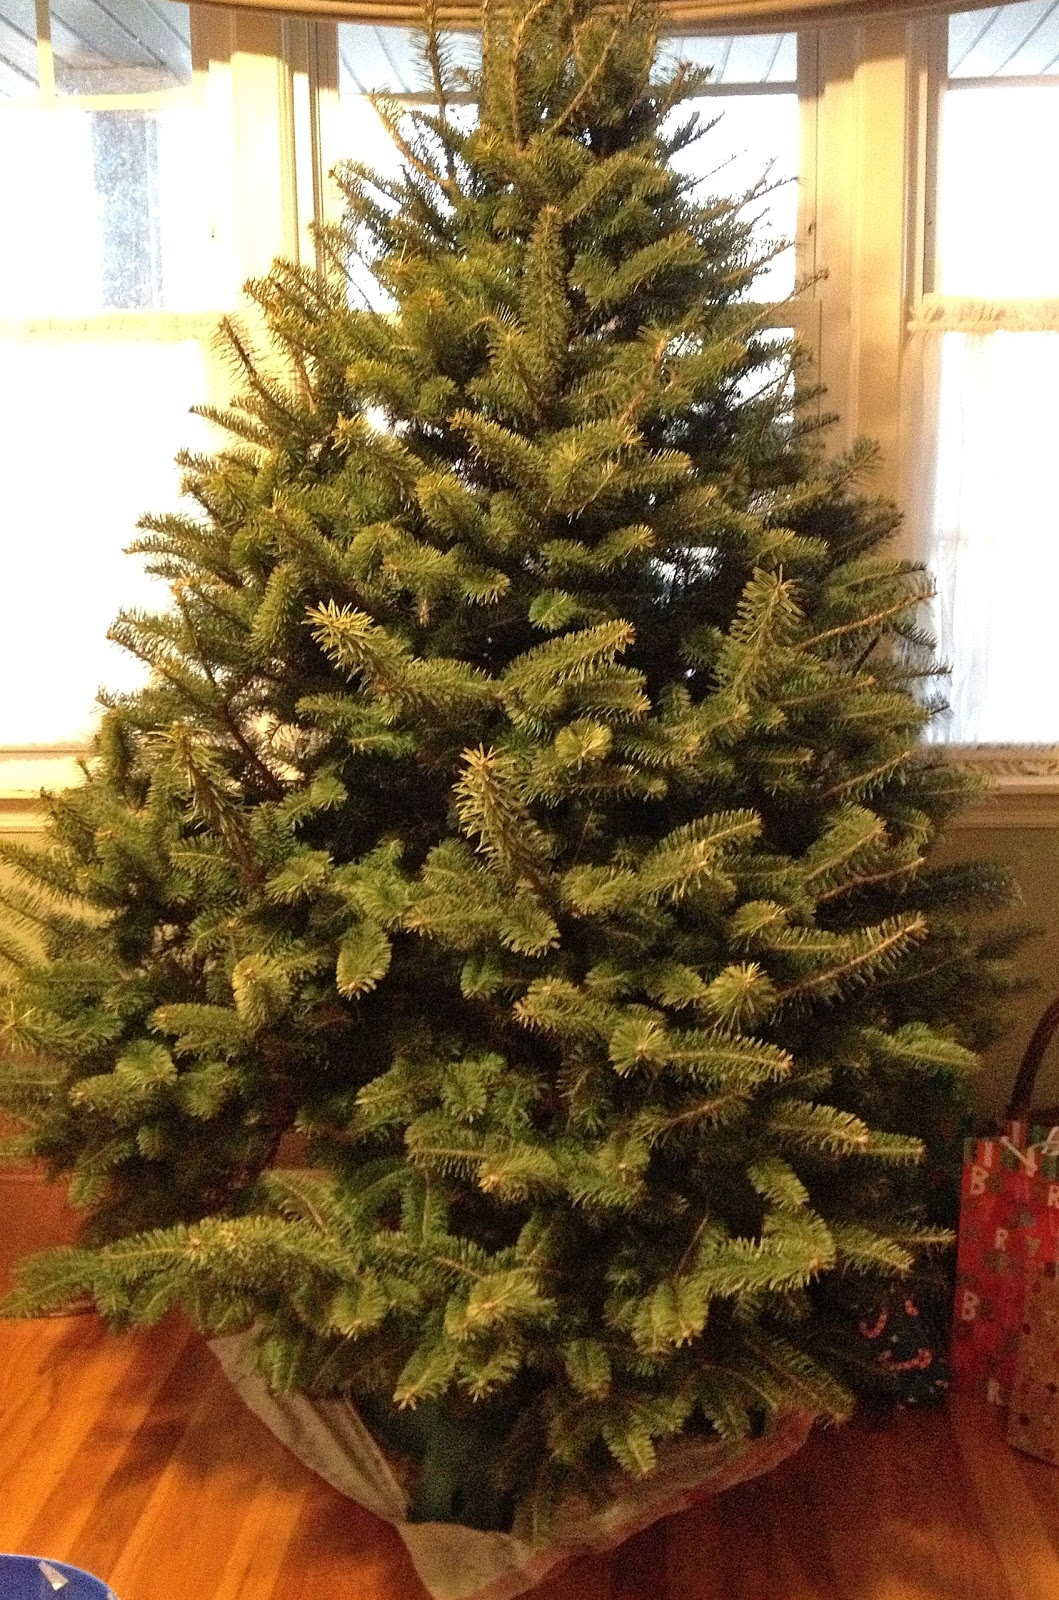 From The Hive It 39 S Alive Christmas Tree What Have You